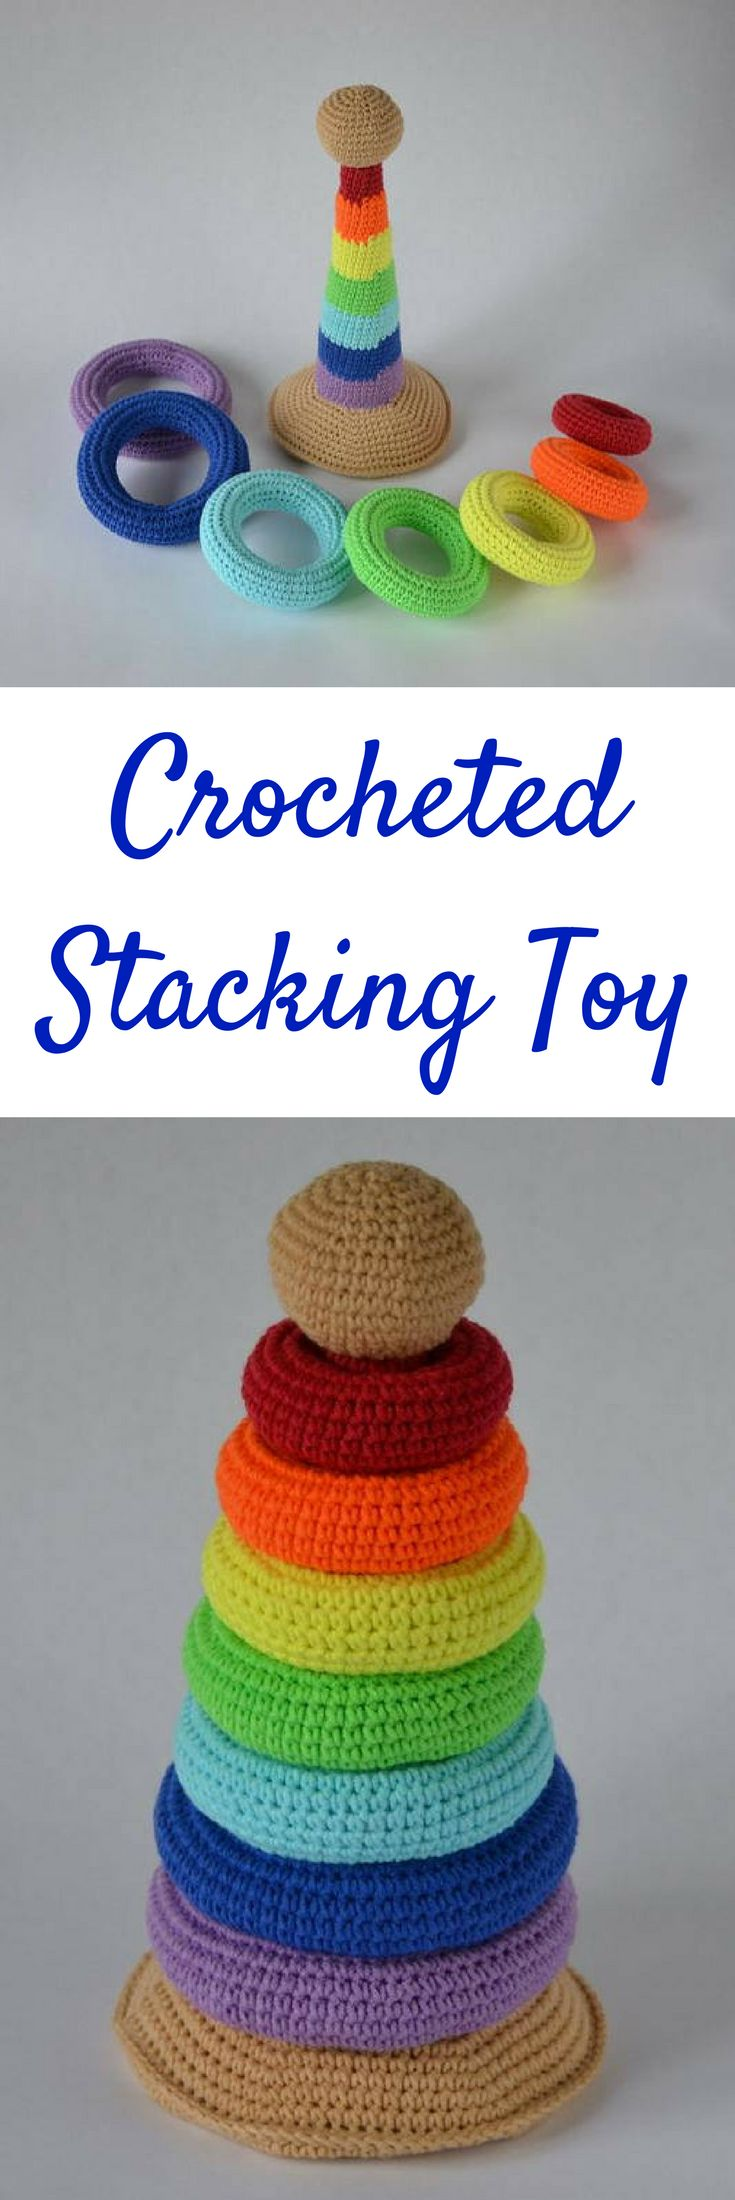 Crochet Stacking Toy for Babies | Sorting Toy | Stacking Toy #ad #baby #babyplay #babyactivities #stacker #toys #crochet #crocheted #crochettoys